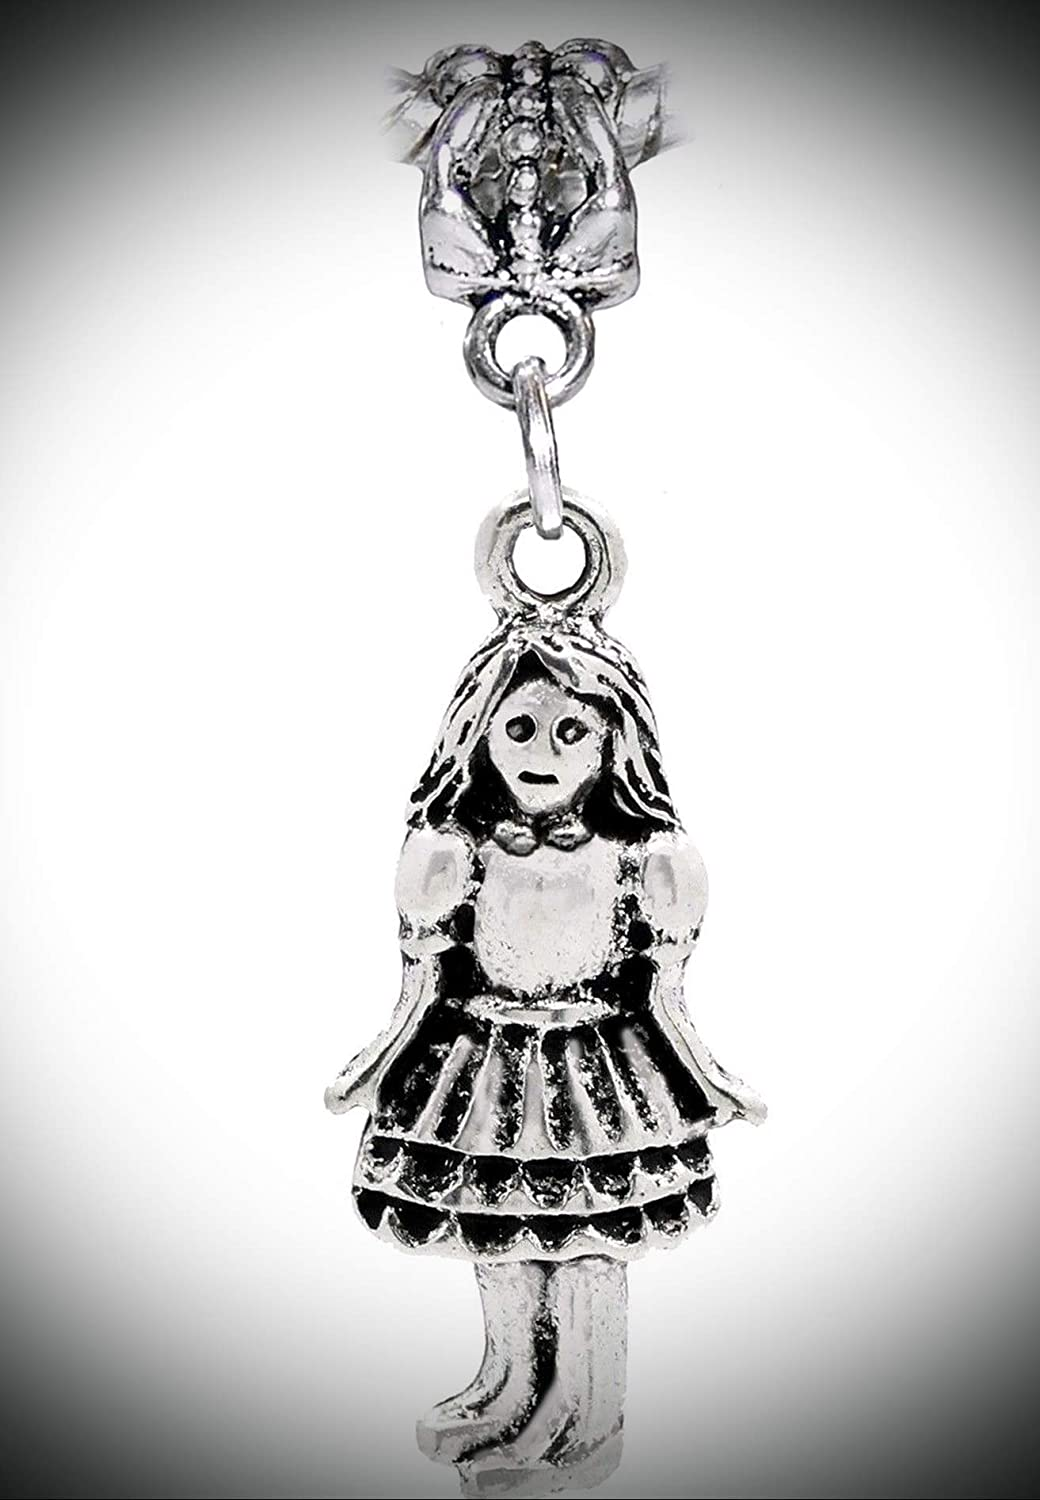 Little Girl Daughter Granddaughter Niece Doll Dangle Charm for European Bracelet Adorable Charms and More for Your own Designs by CharmingStuffS